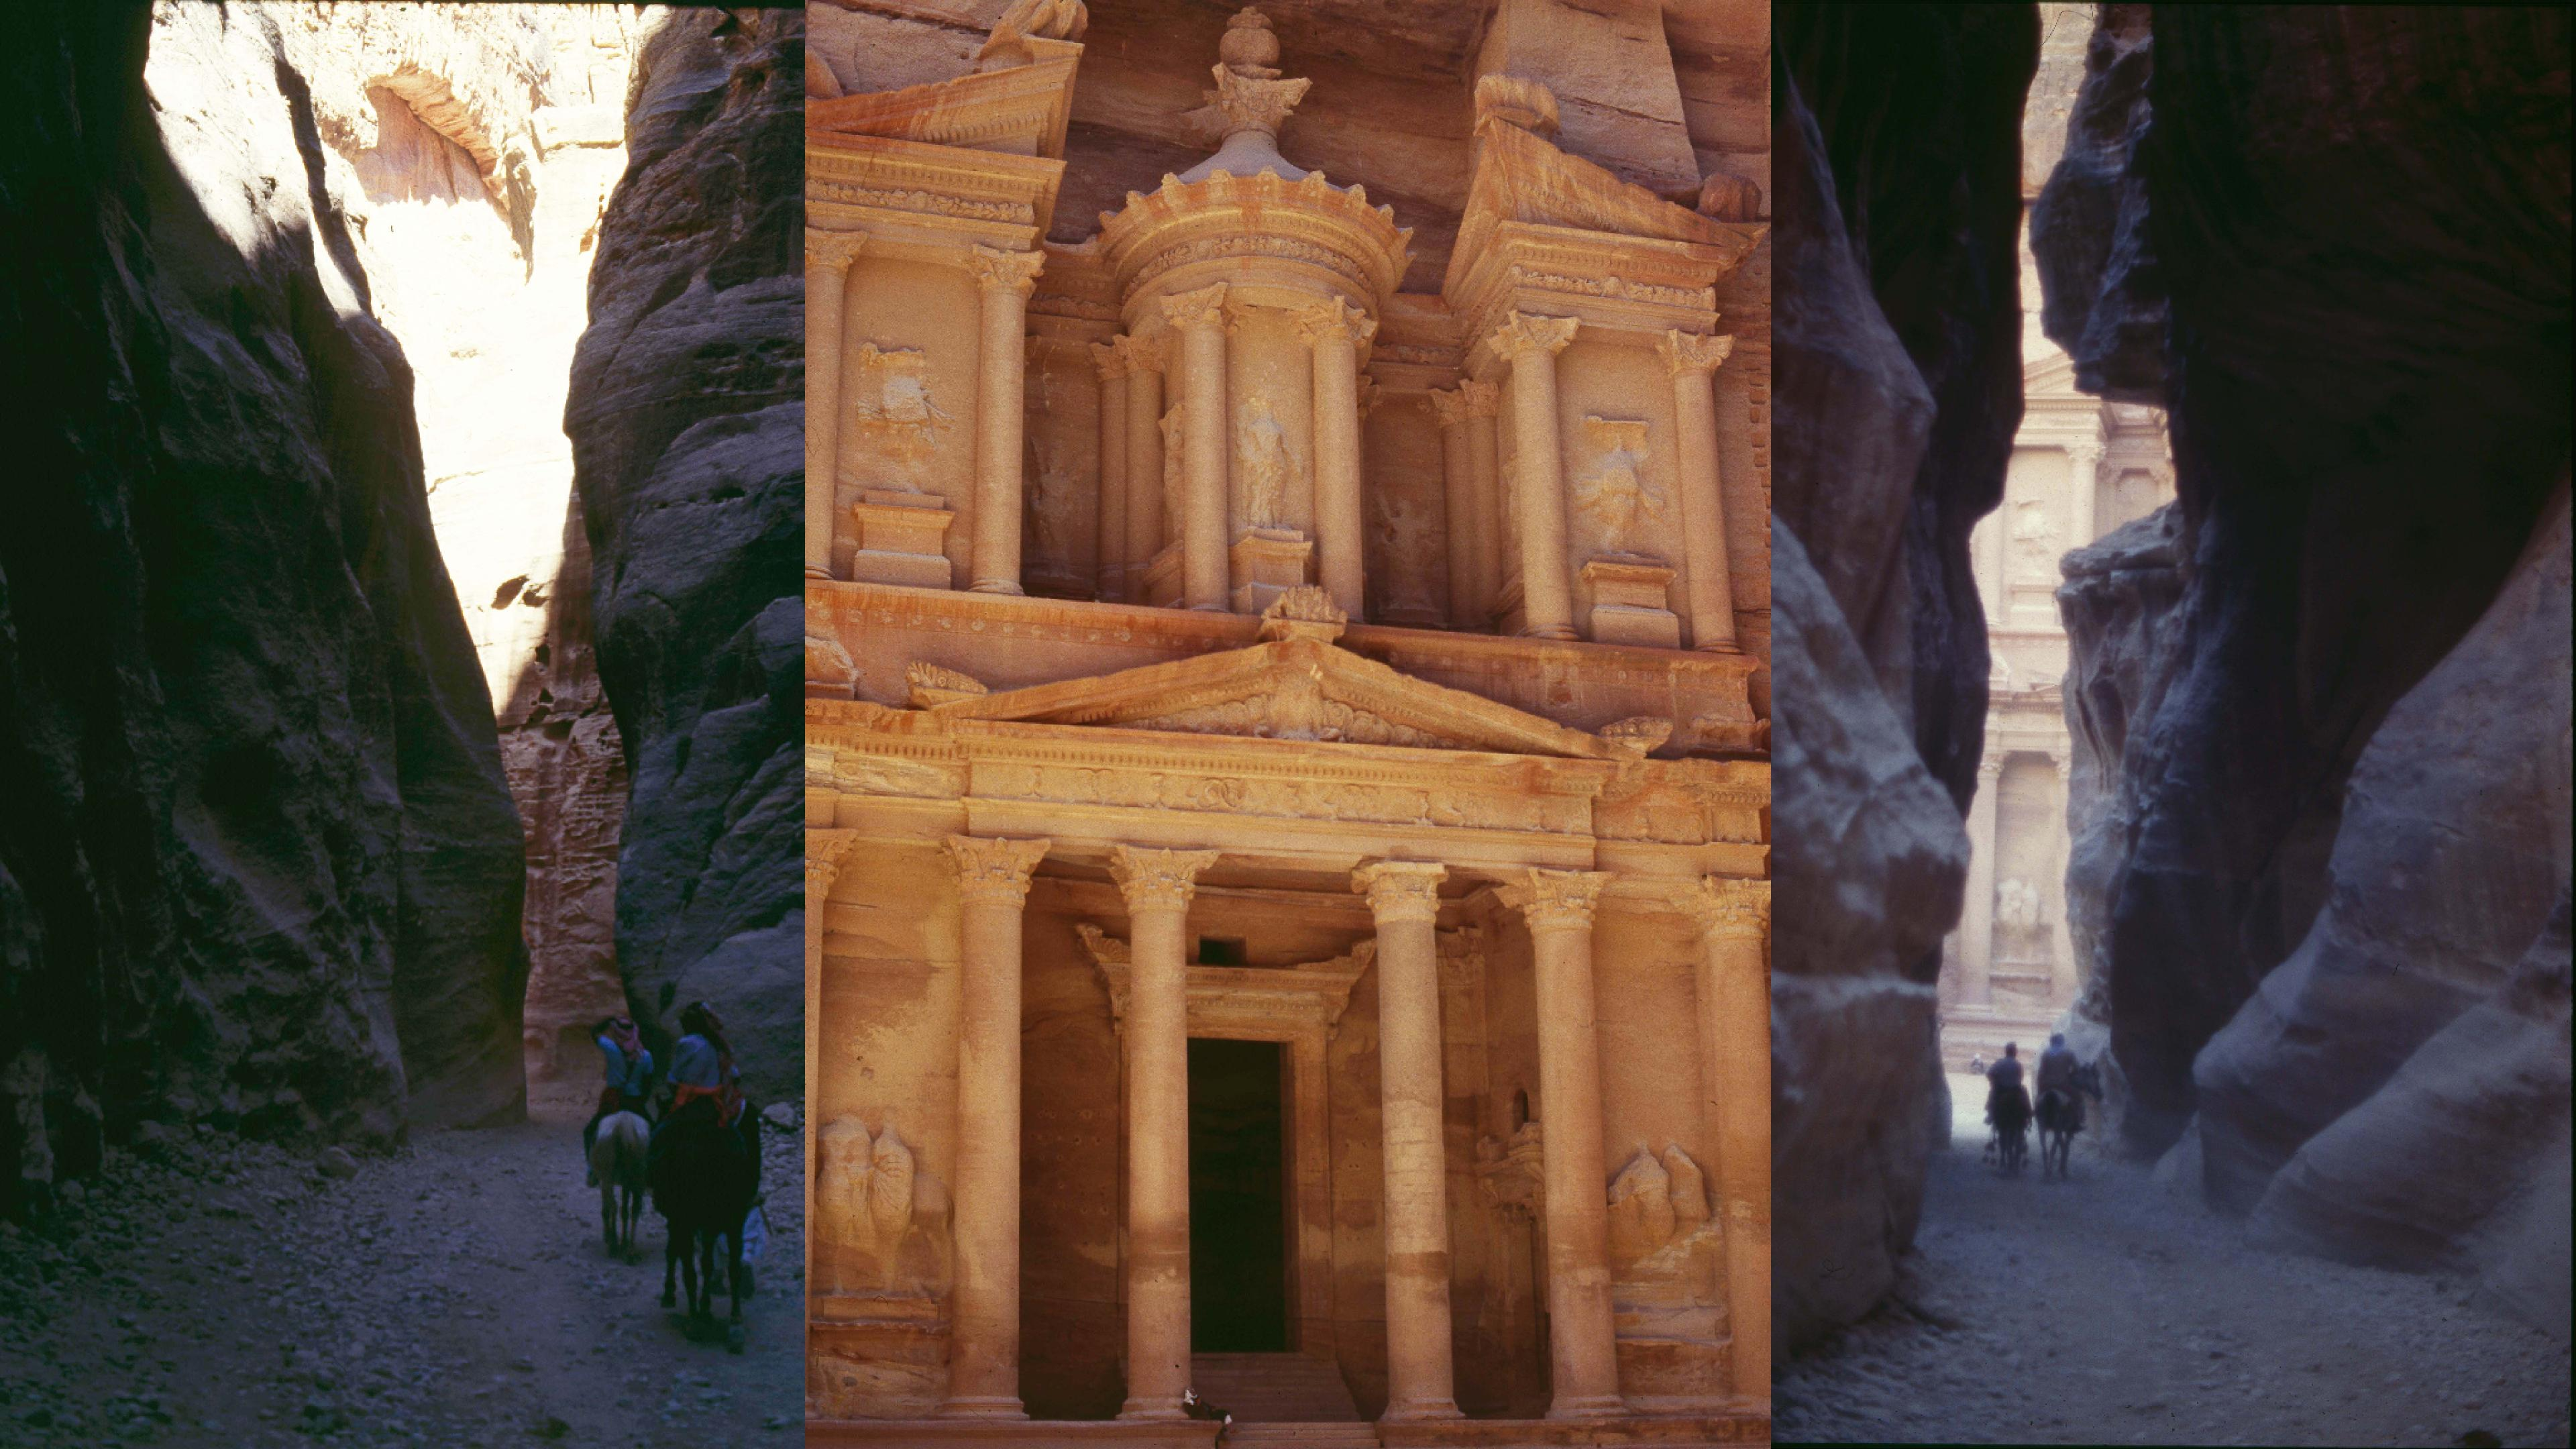 EL KHASNETH, PETRA (first centuries BC to AD)